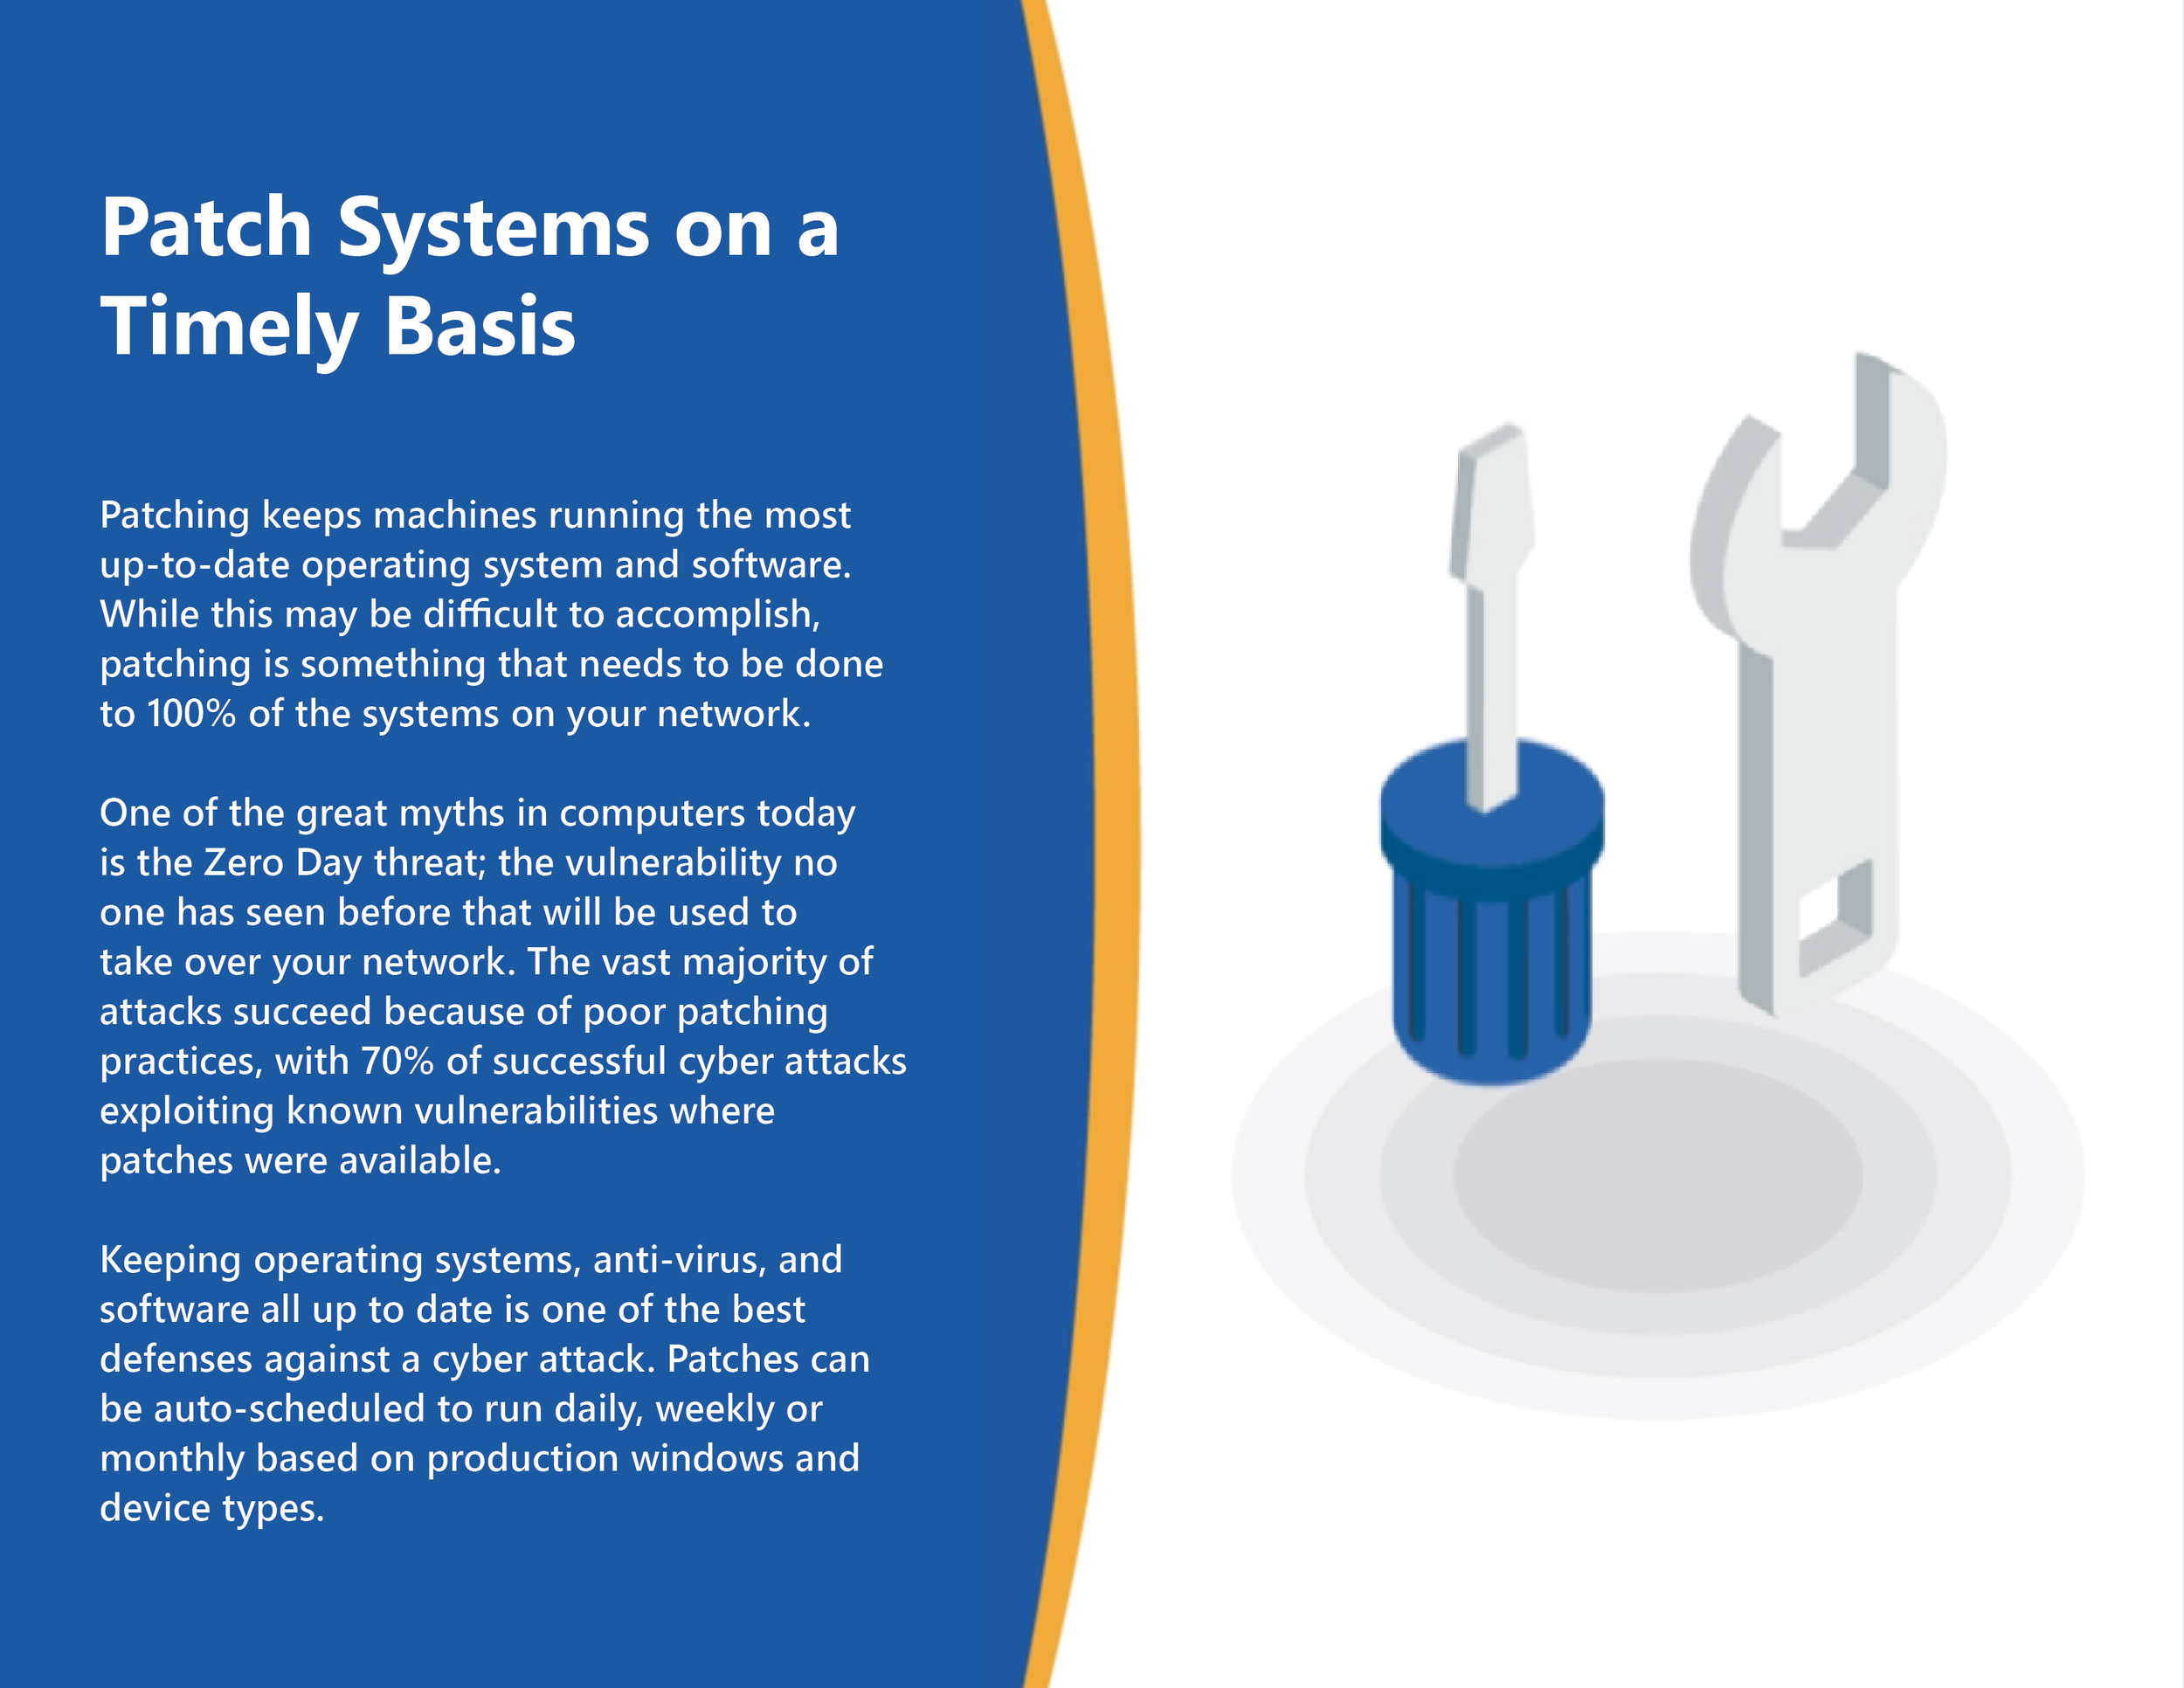 Patch Systems on a Timely Basis